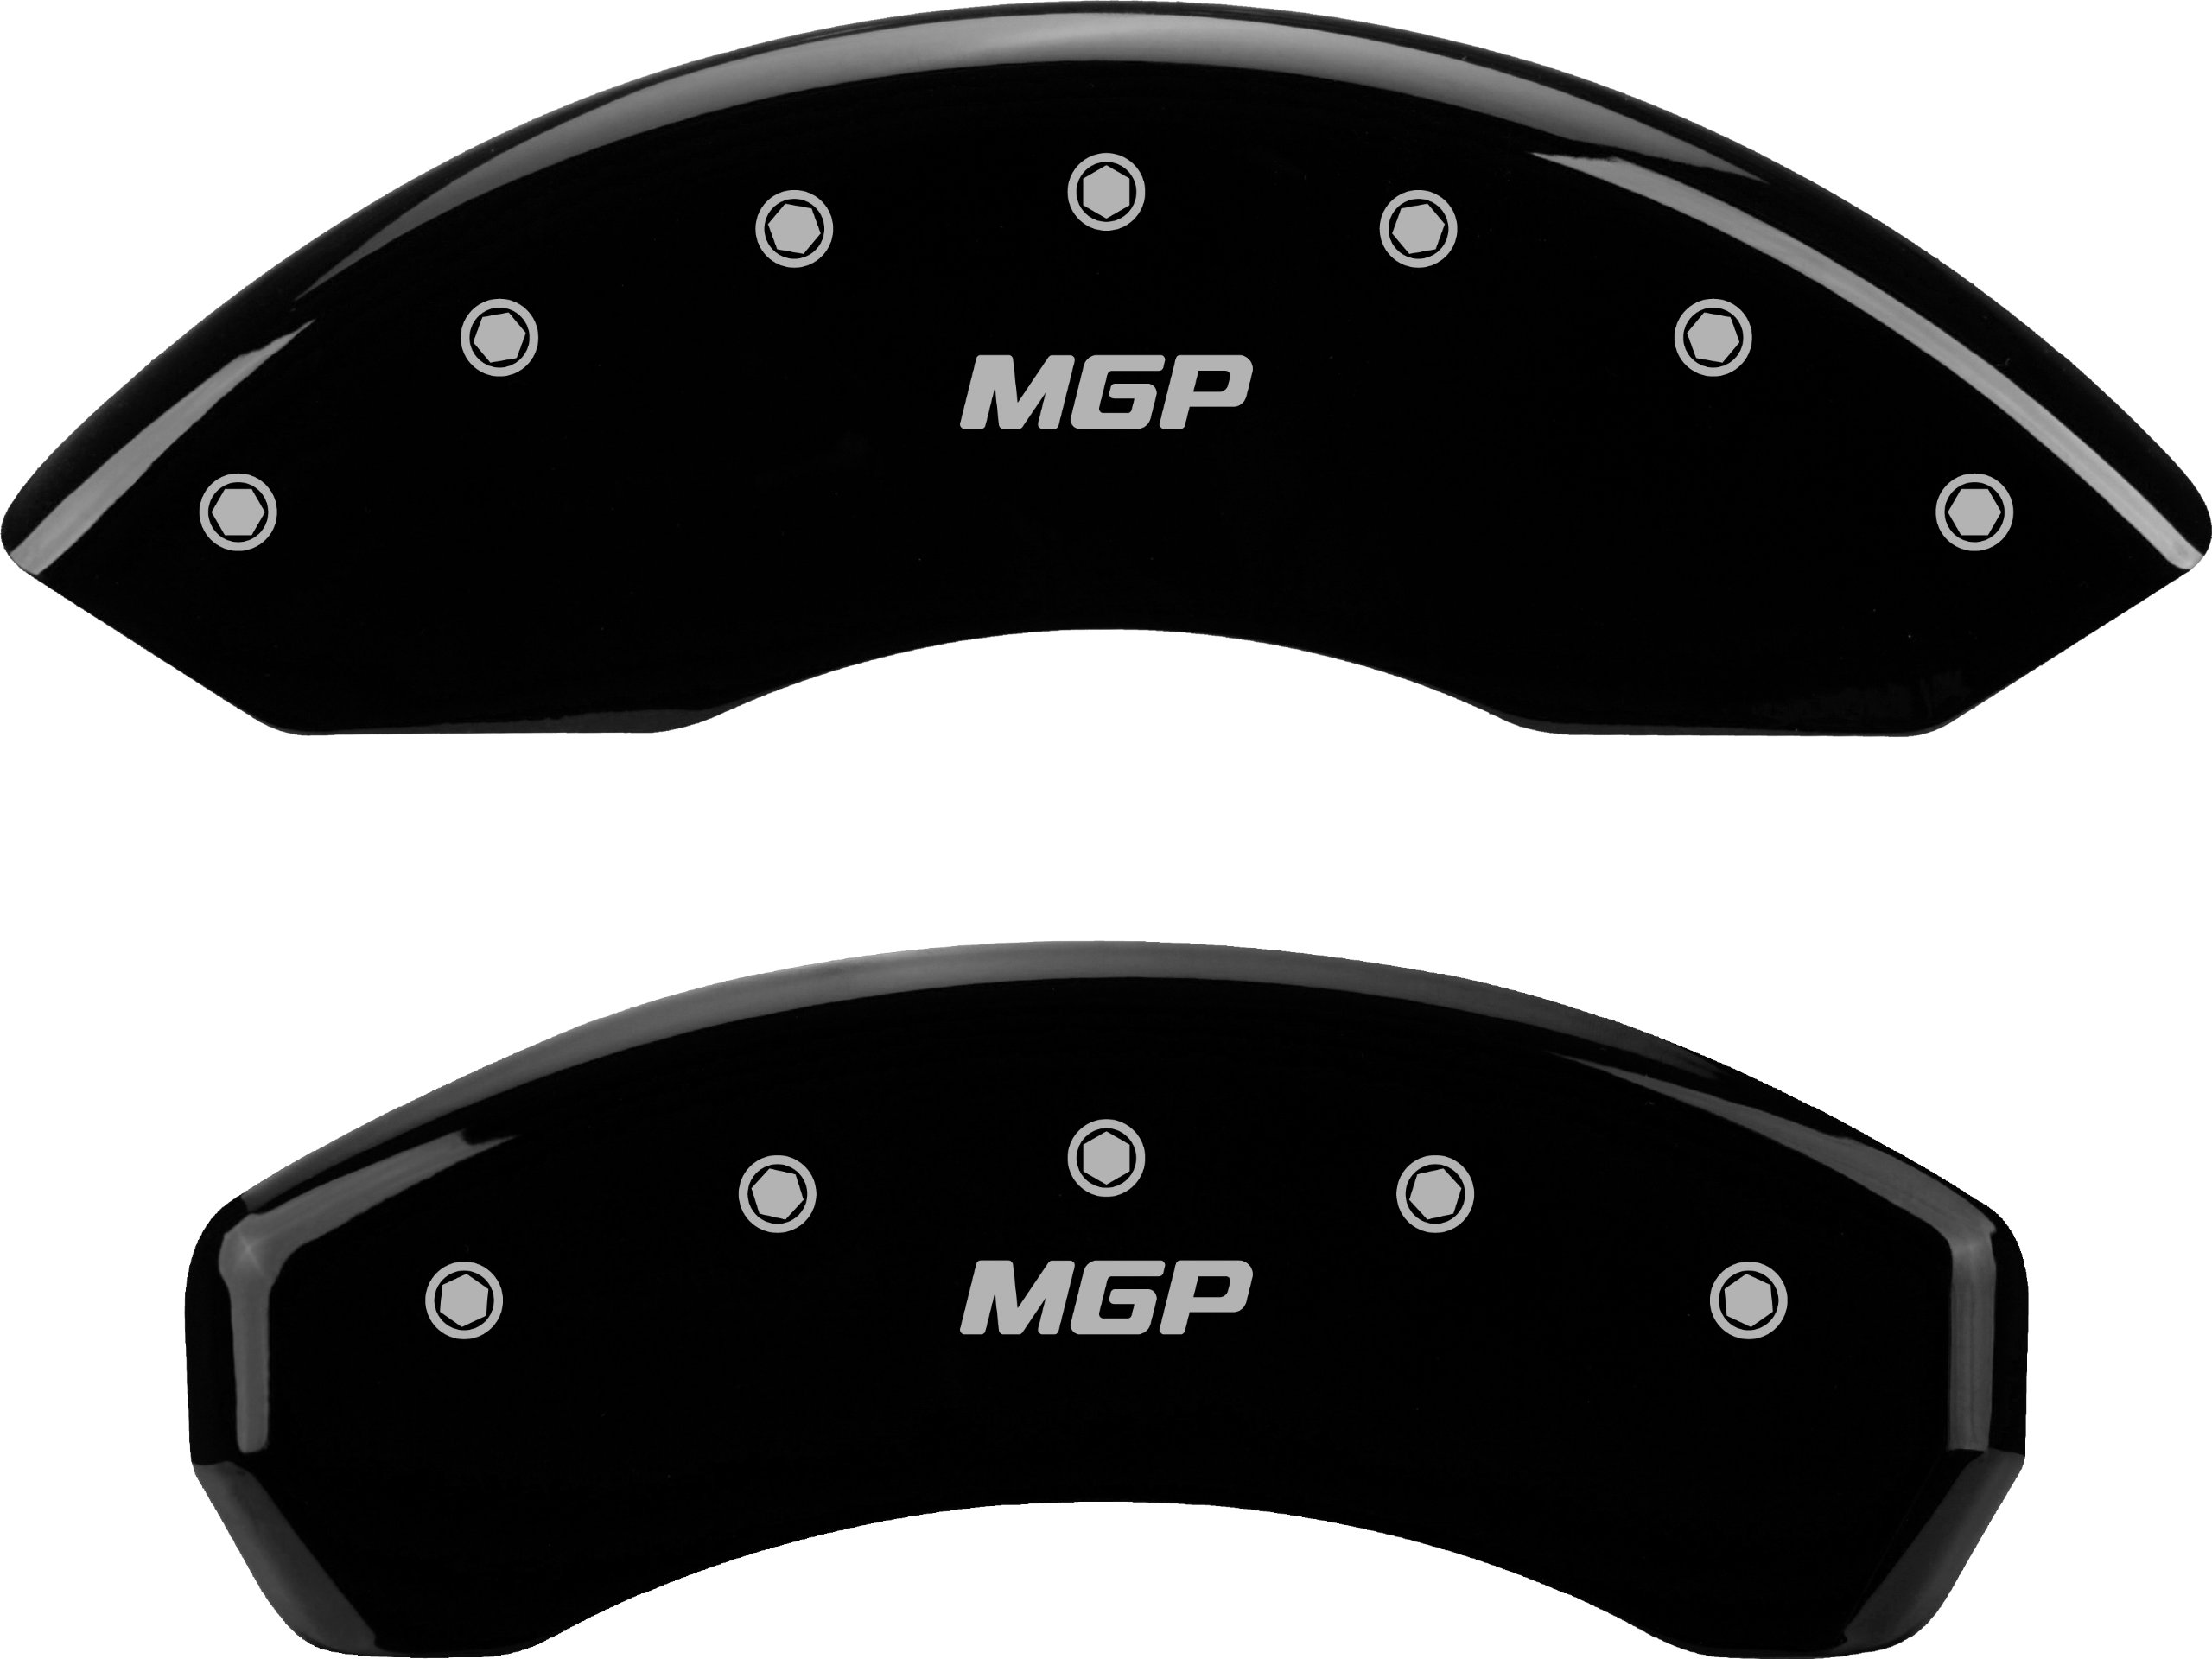 MGP Caliper Covers 12001SMGPBK 'MGP' Engraved Caliper Cover with Black Powder Coat Finish and Silver Characters, (Set of 4)